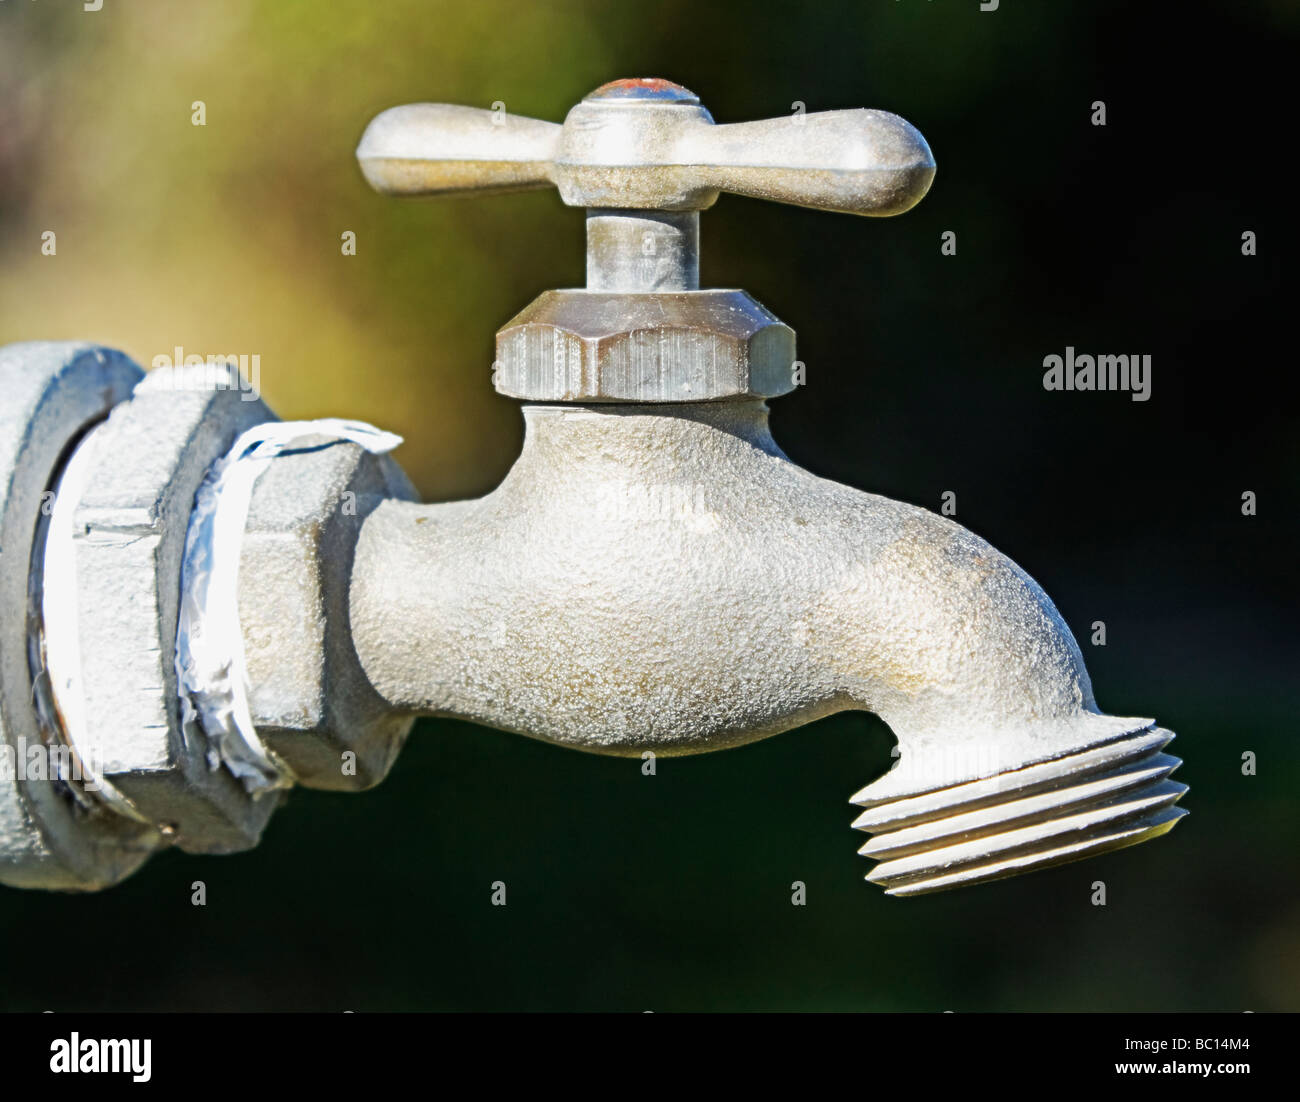 Outdoor Water Faucet Stock Photos & Outdoor Water Faucet Stock ...